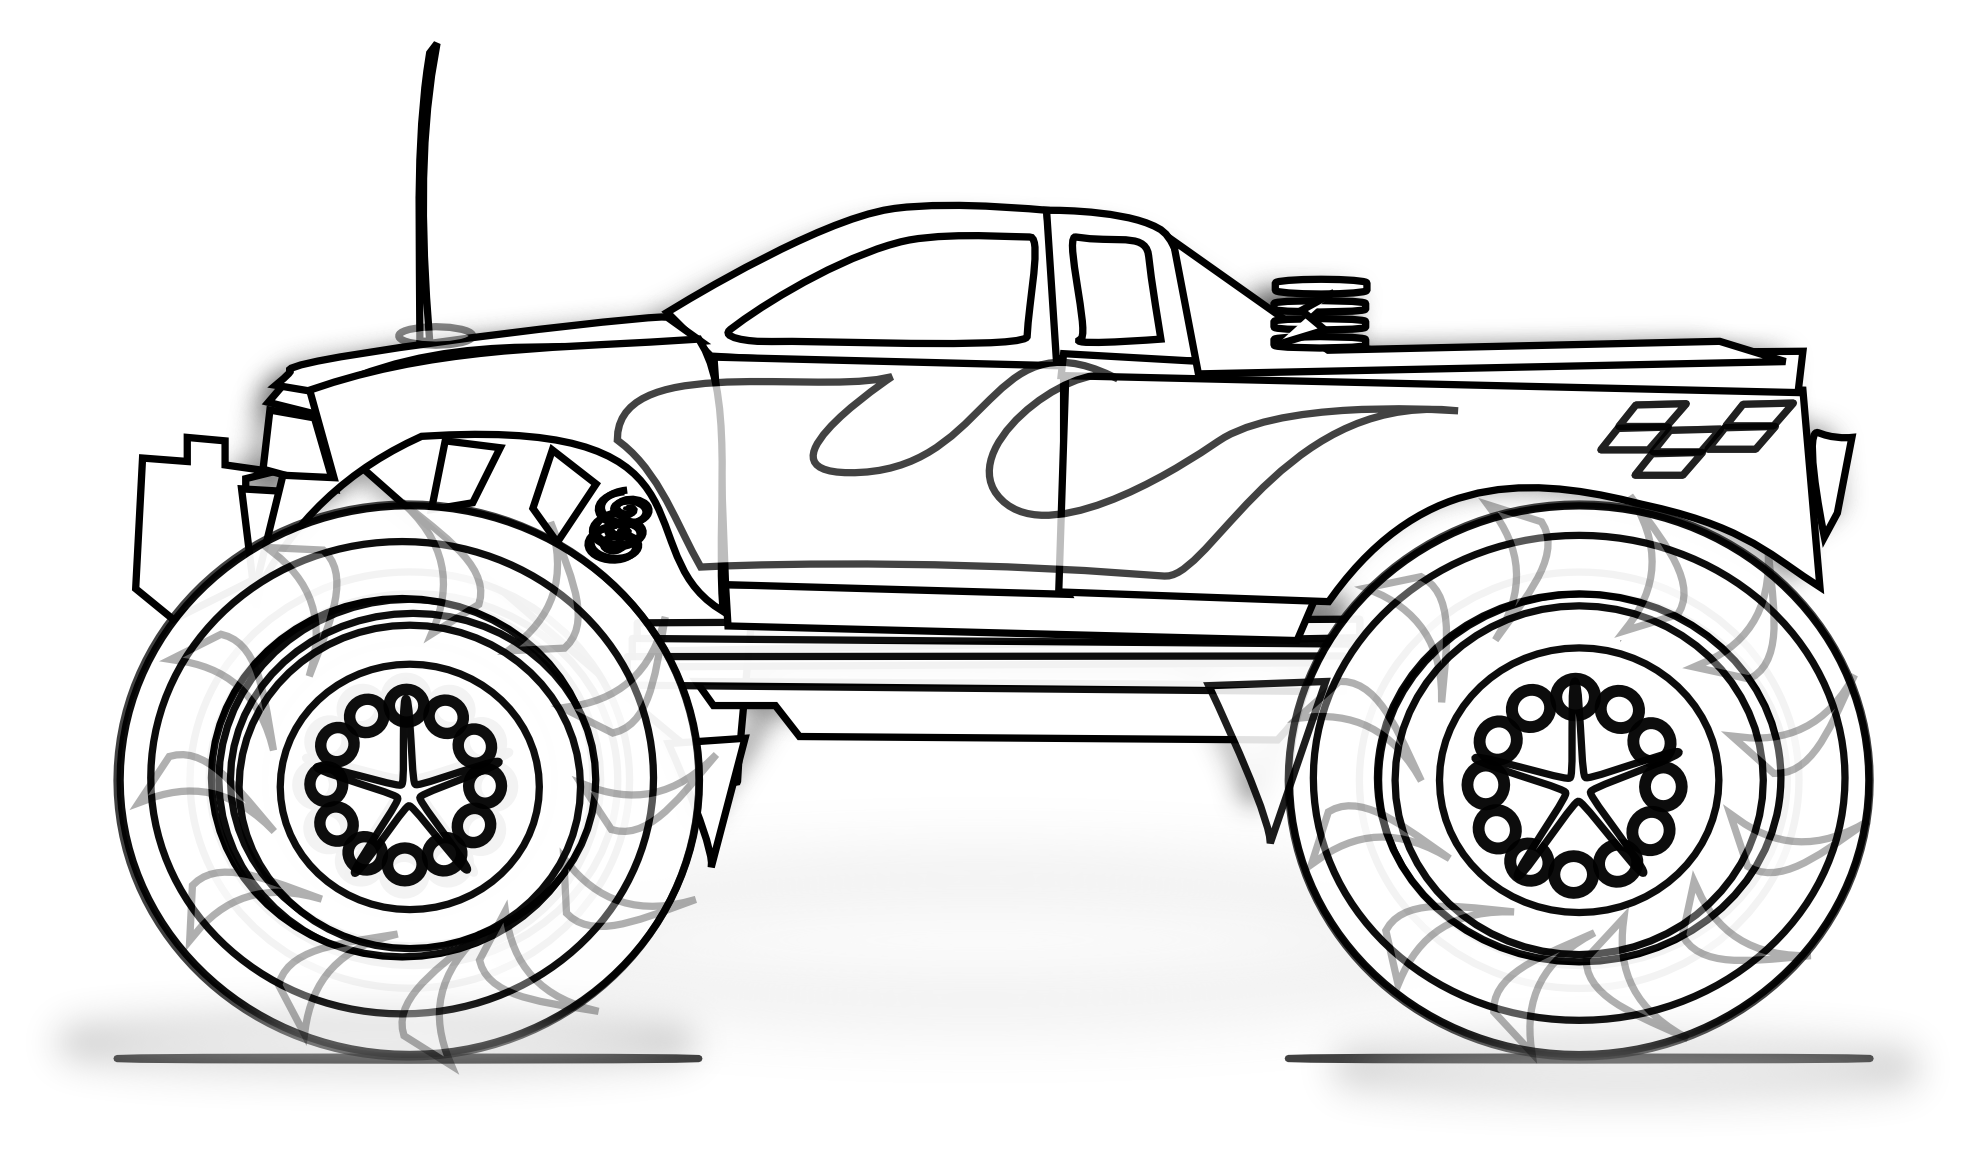 medium resolution of free printable monster truck coloring pages for kids birthdayprint pictures free printable monster truck coloring pagjuies